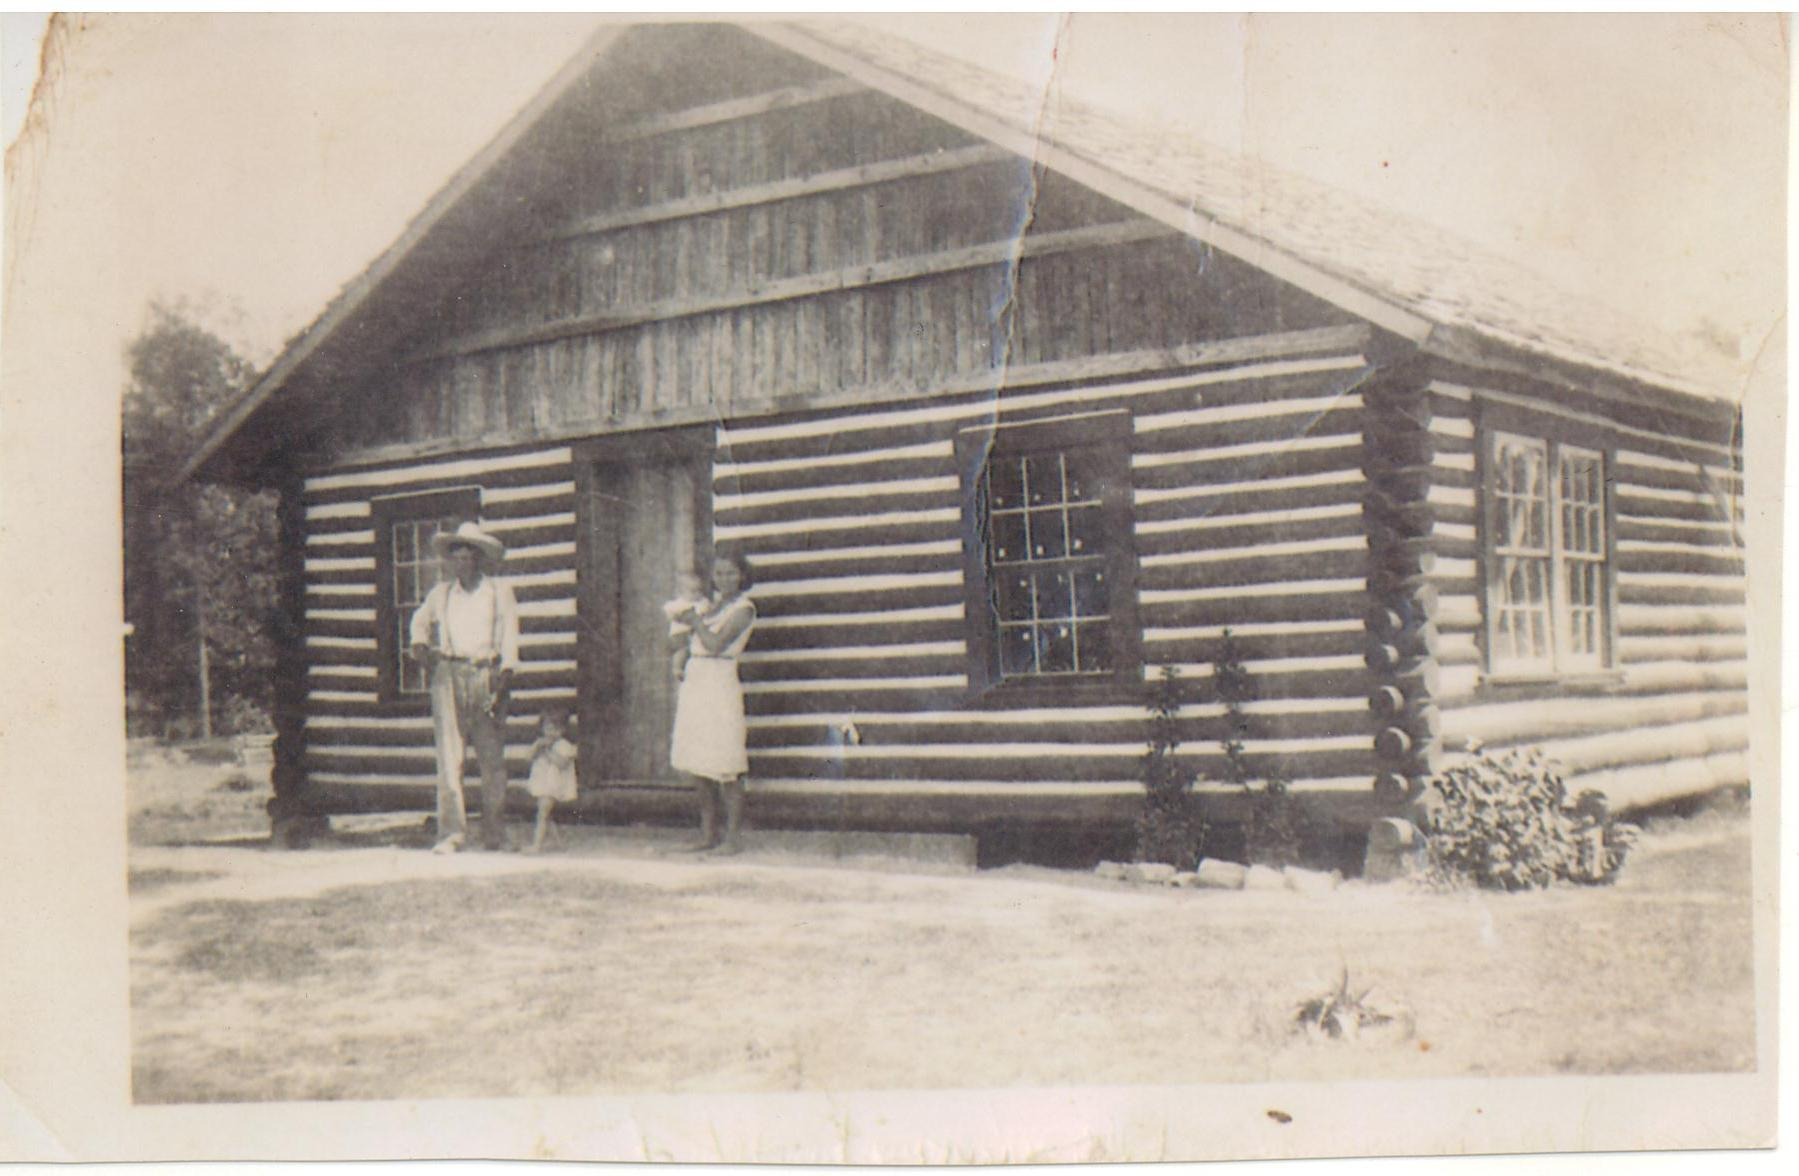 Original Cabin at completion